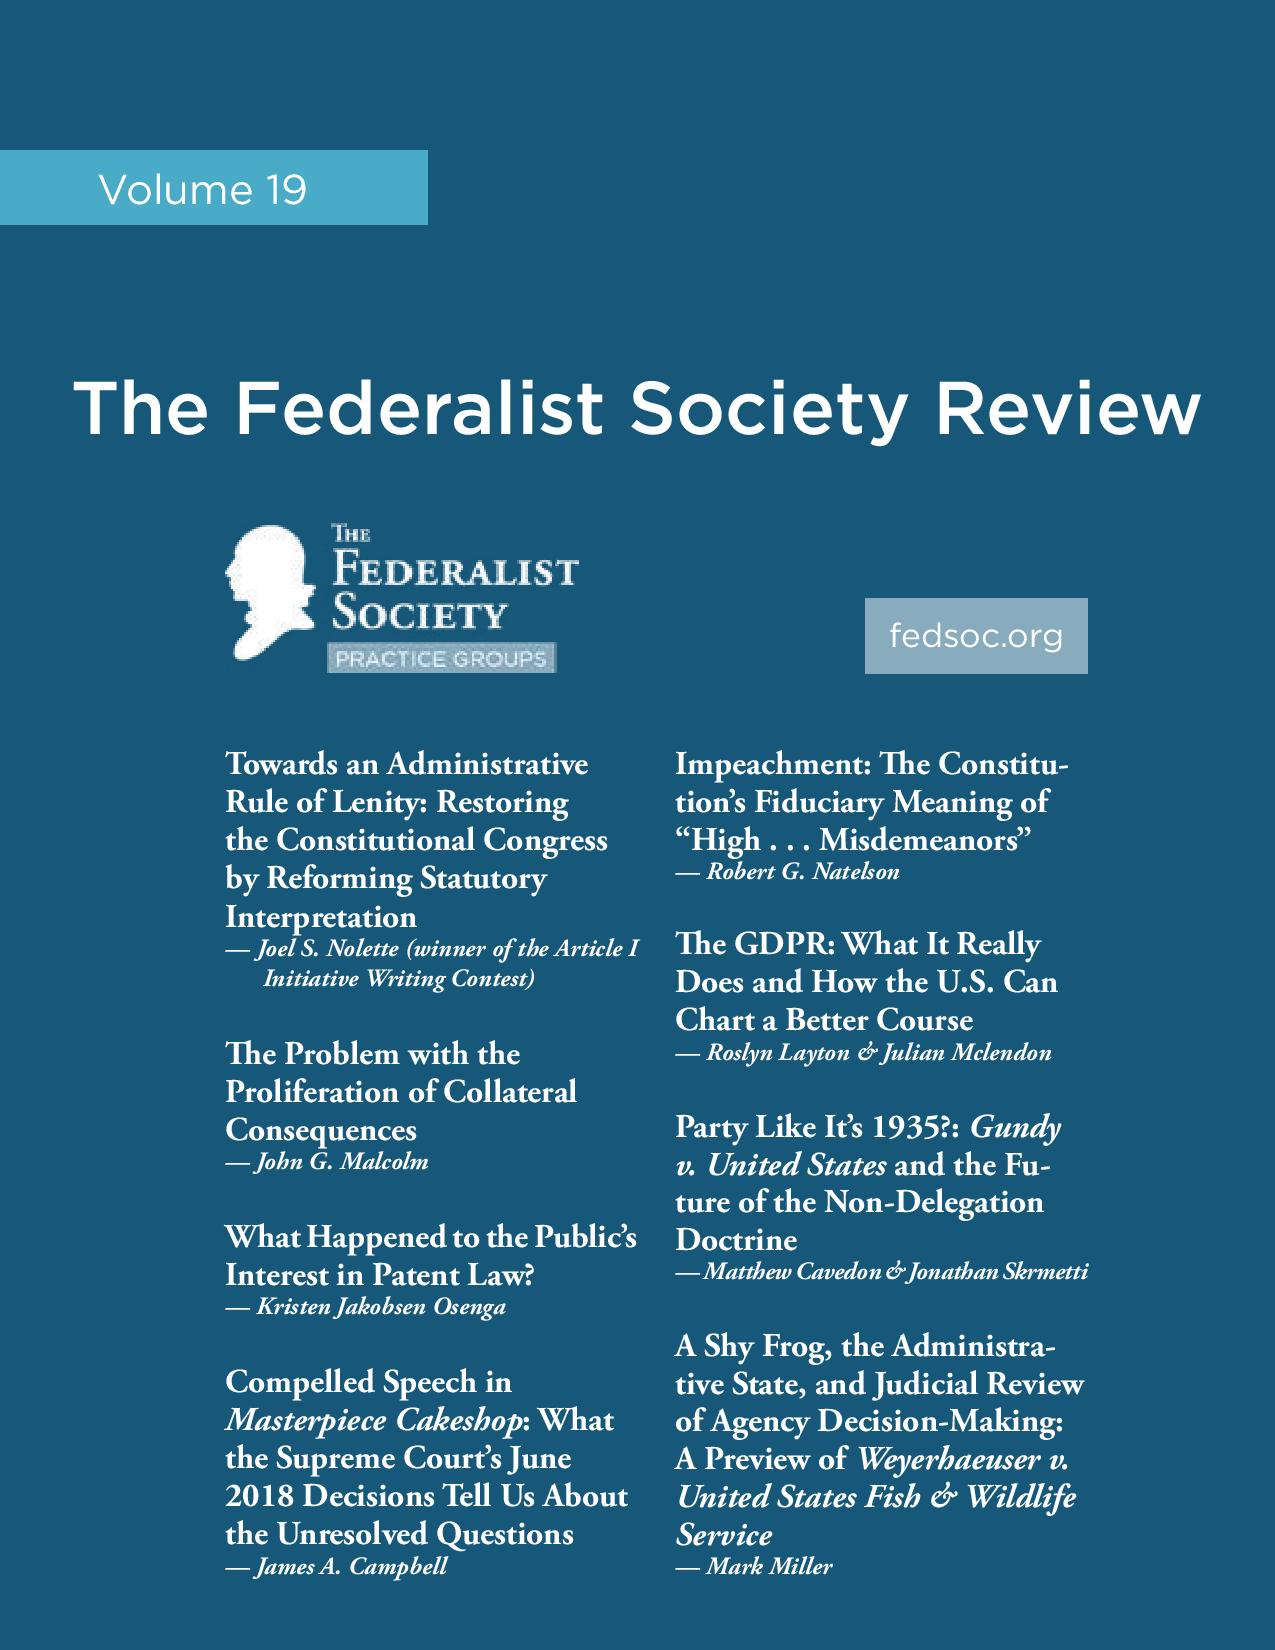 Federalist Society Review, Volume 19